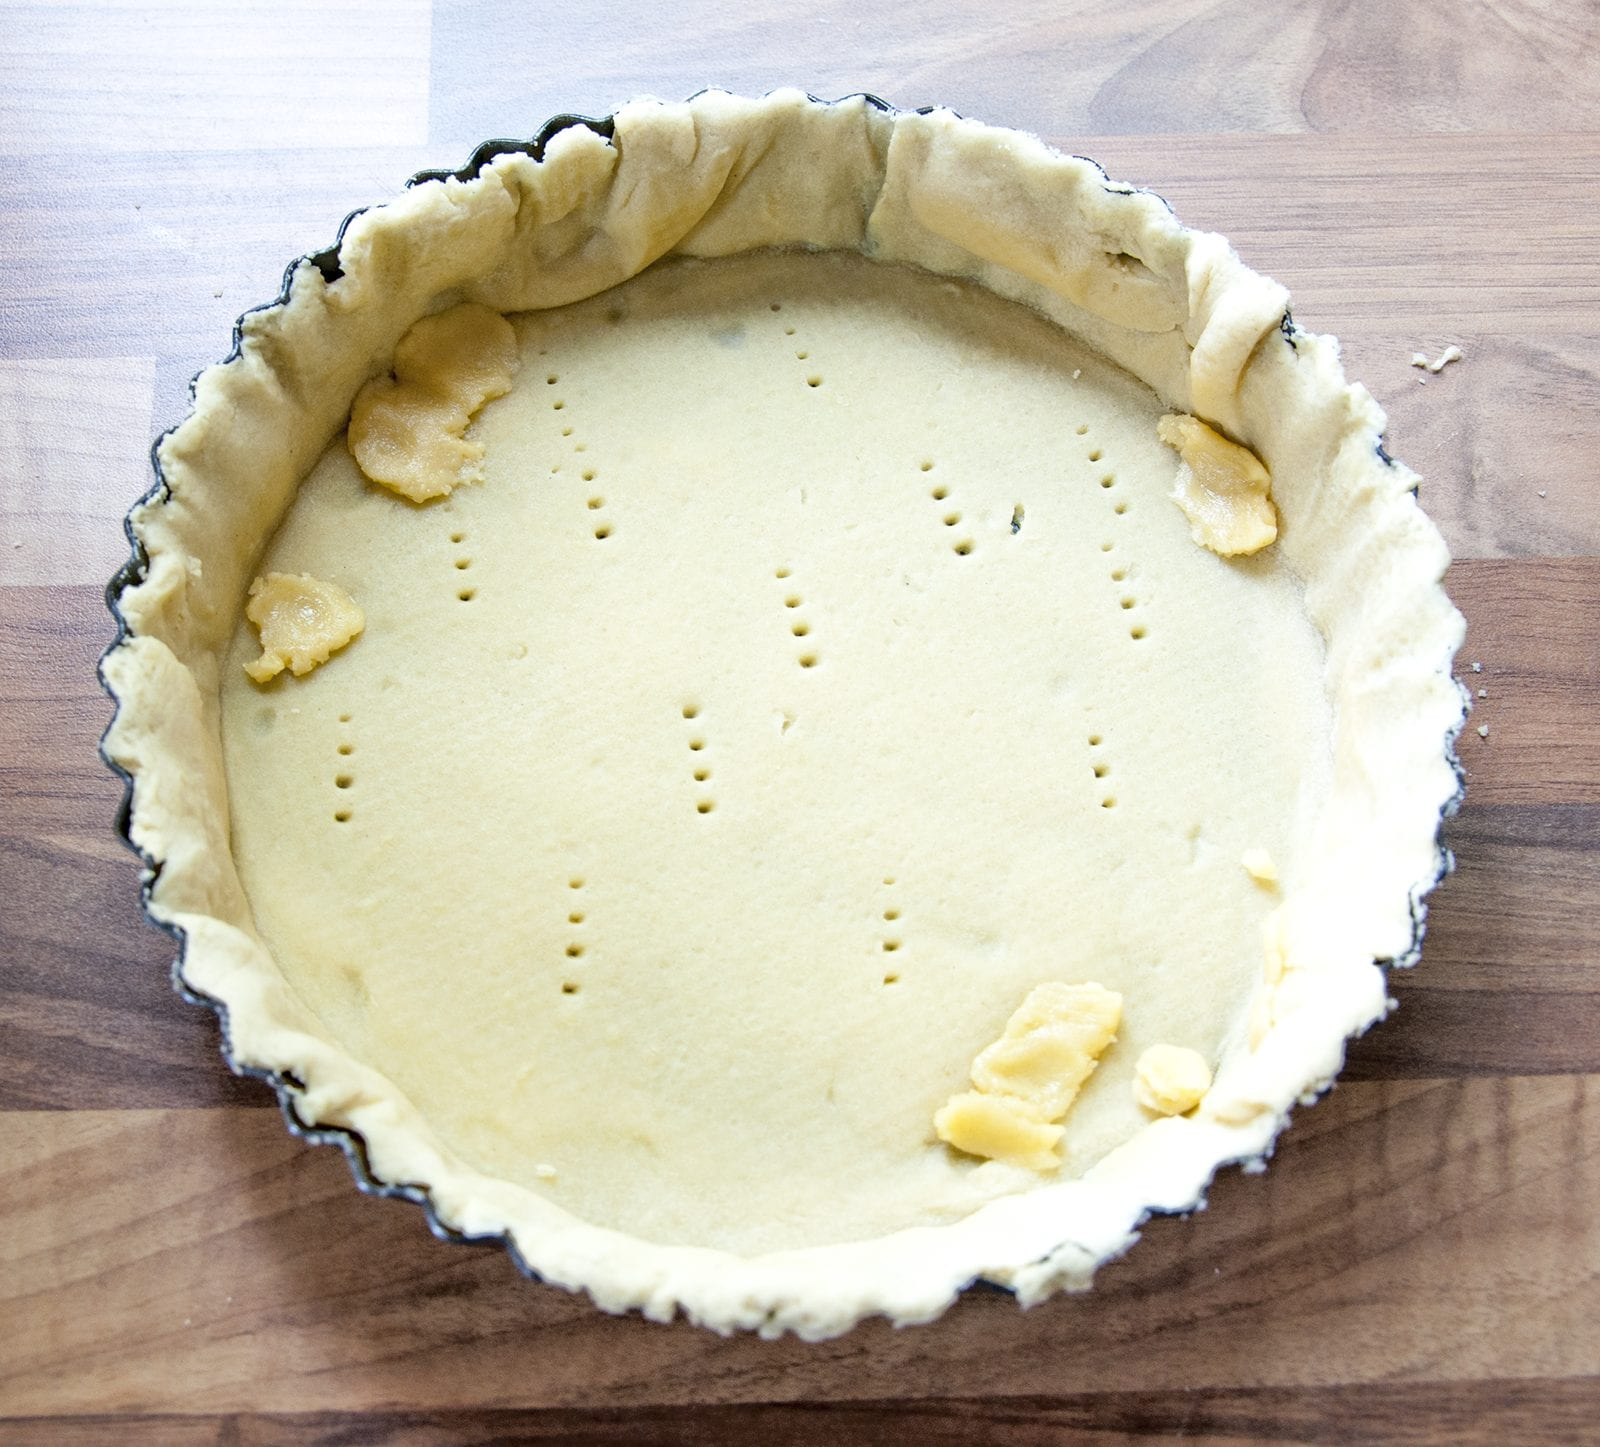 School Pudding Gypsy Tart. Make any repairs | https://theyumyumclub.com/2019/05/23/school-pudding-gypsy-tart/